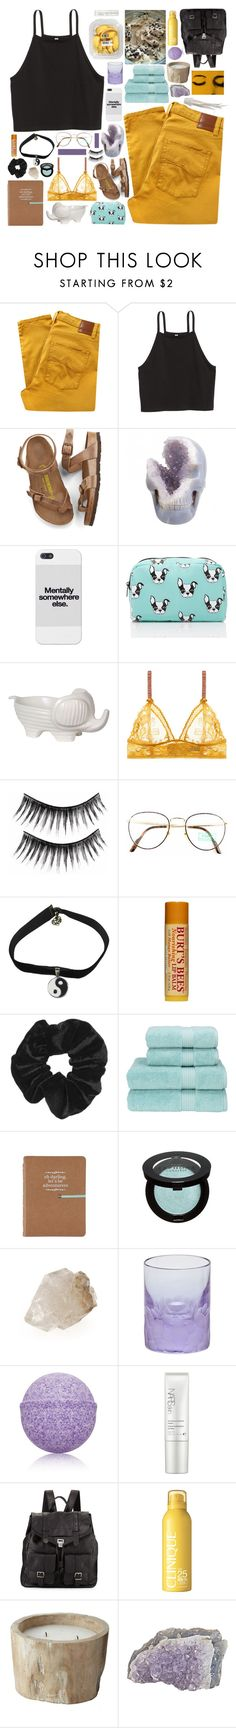 """""""☾ until we meet again // damiah's set contest day two"""" by thundxrstorms ❤ liked on Polyvore featuring Nobody Denim, Birkenstock, Forever 21, Privilege, STELLA McCARTNEY, Benetton, Retrò, Burt's Bees, Topshop and Christy"""